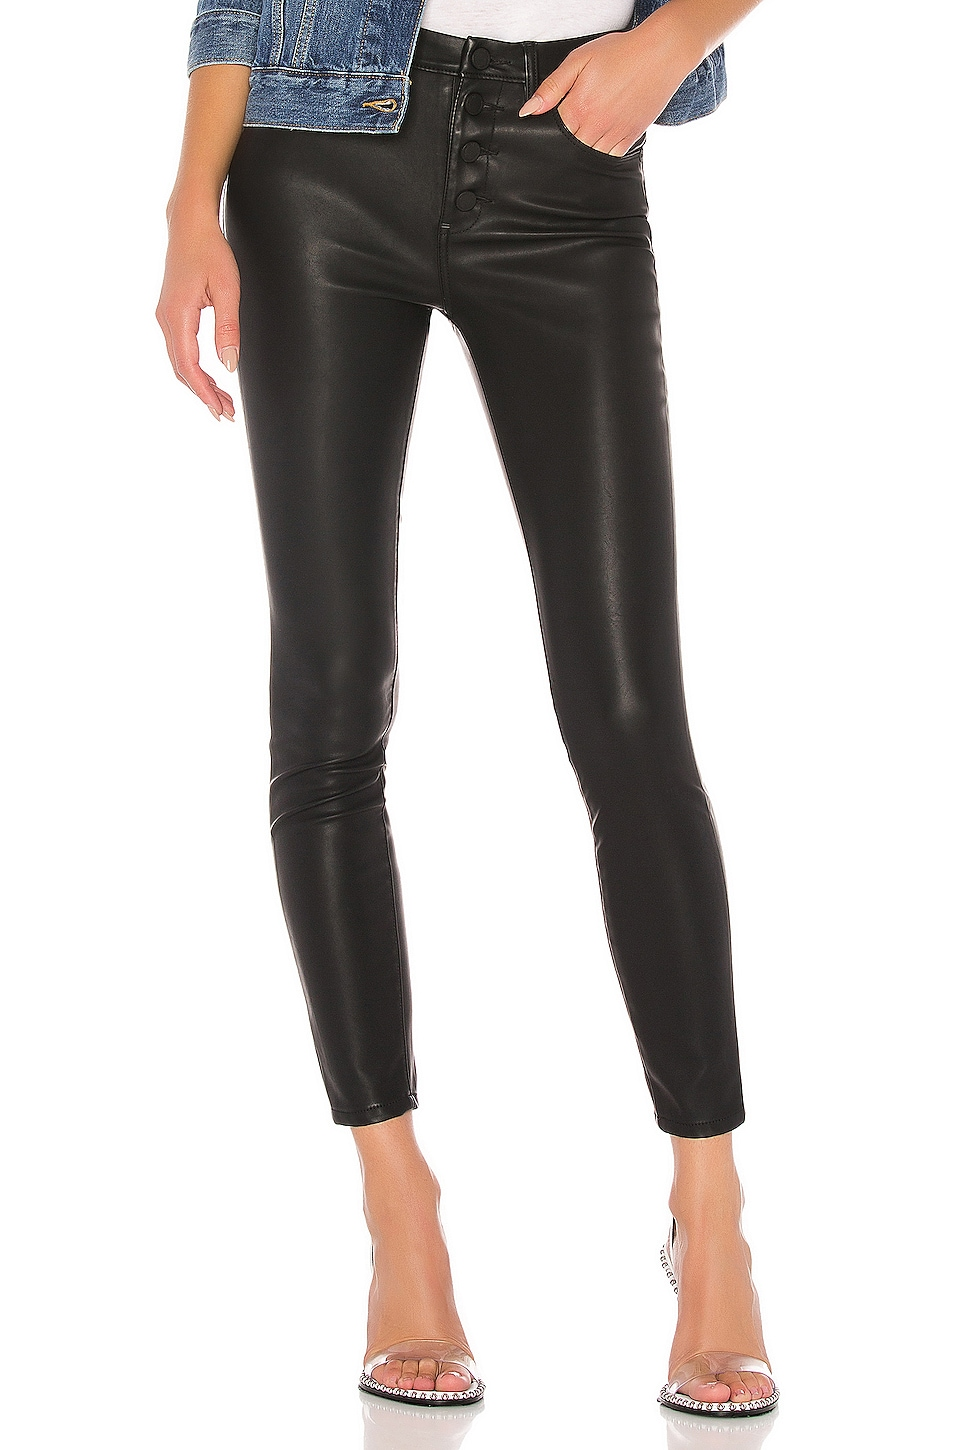 Vegan Leather Daddy Soda Pant                   BLANKNYC                                                                                                                             CA$ 128.16 2